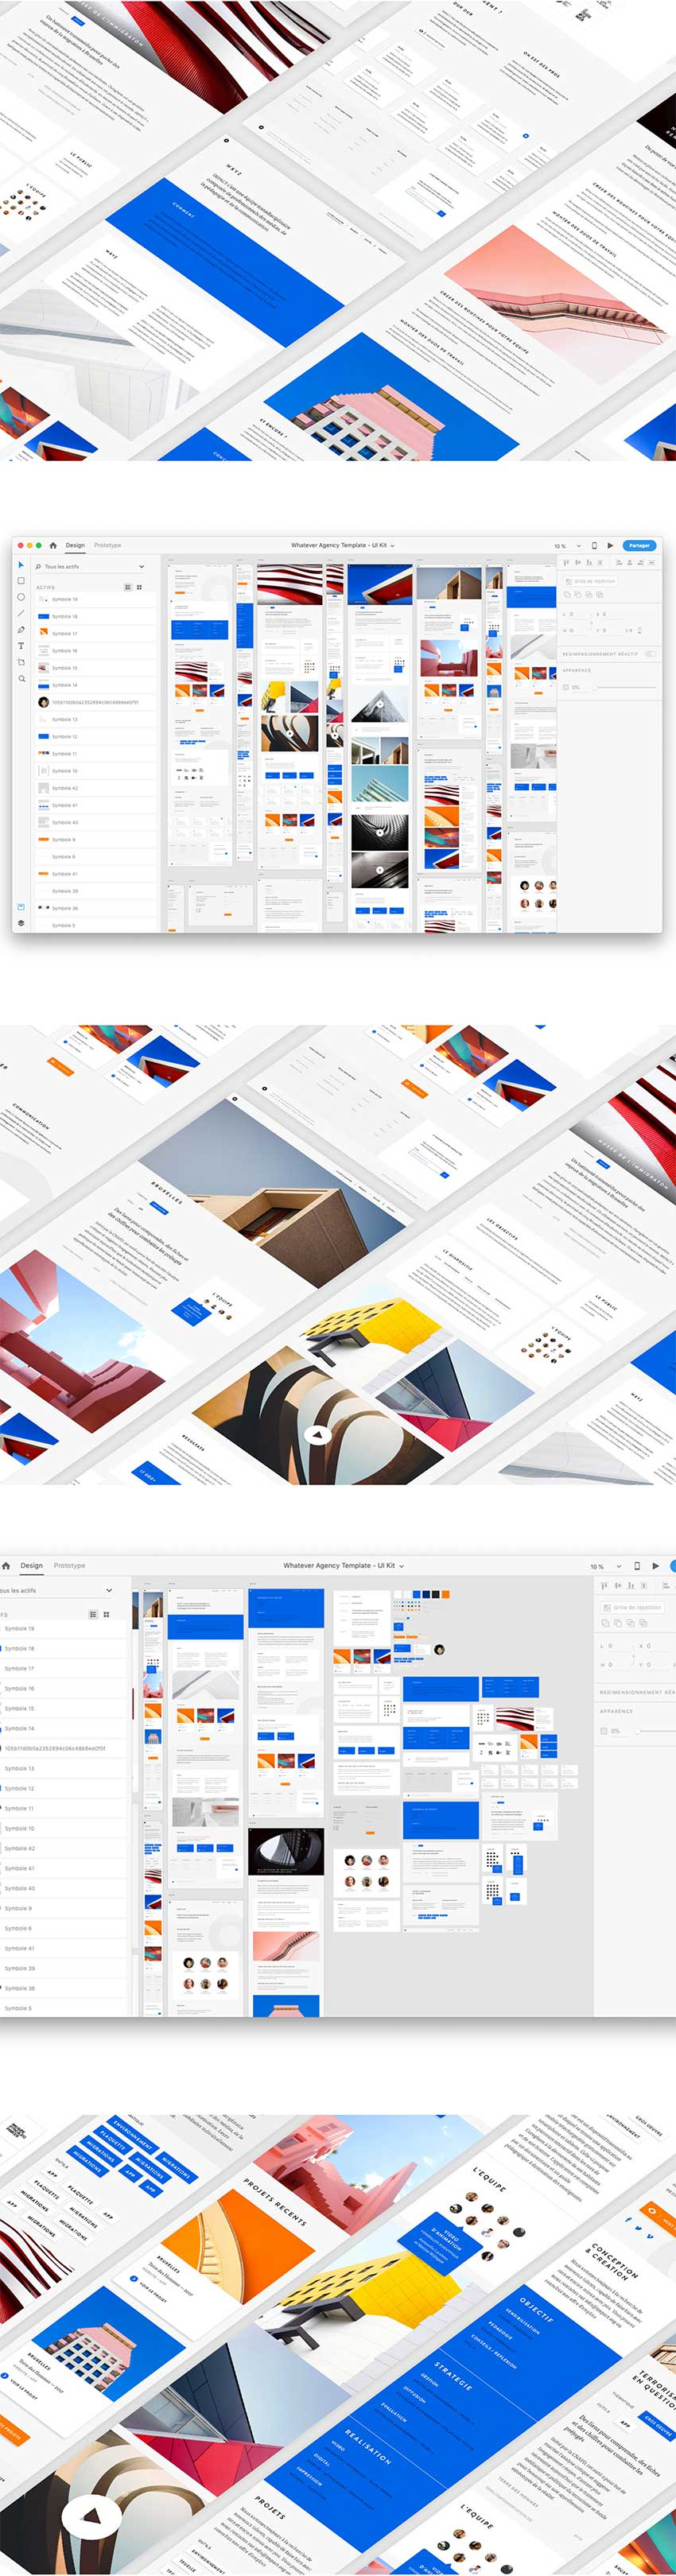 Agency Web Template UI Kit Adobe Xd Template